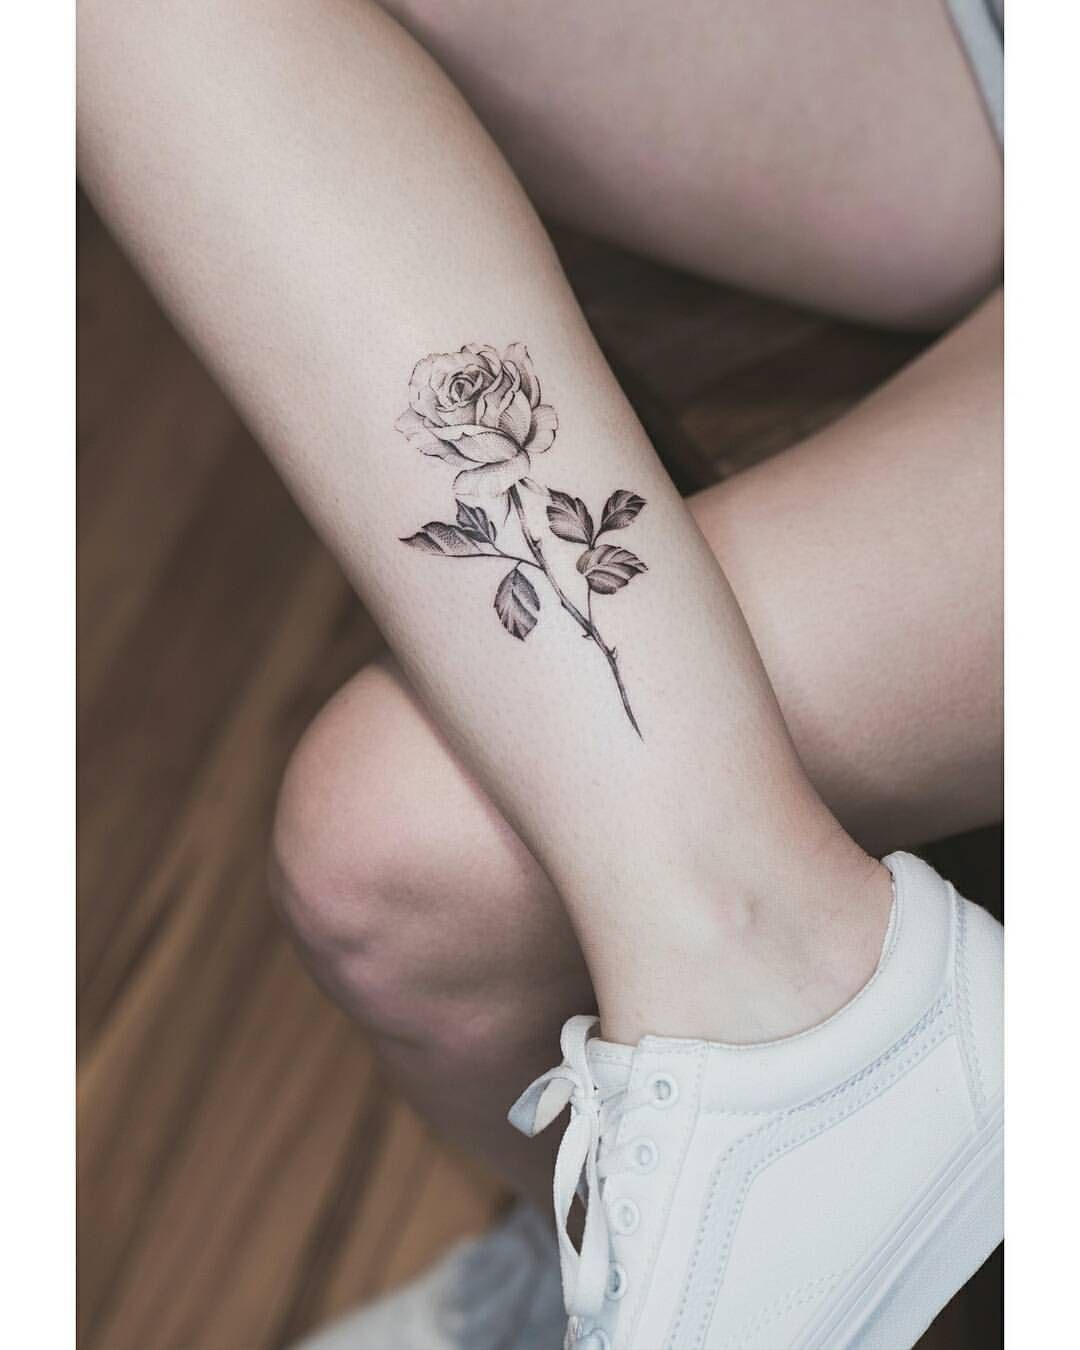 Top 65 Inspiring Tattoo Design Ideas For Girls Howaz Part 24 Small Rose Tattoo Little Rose Tattoos Rose Hand Tattoo